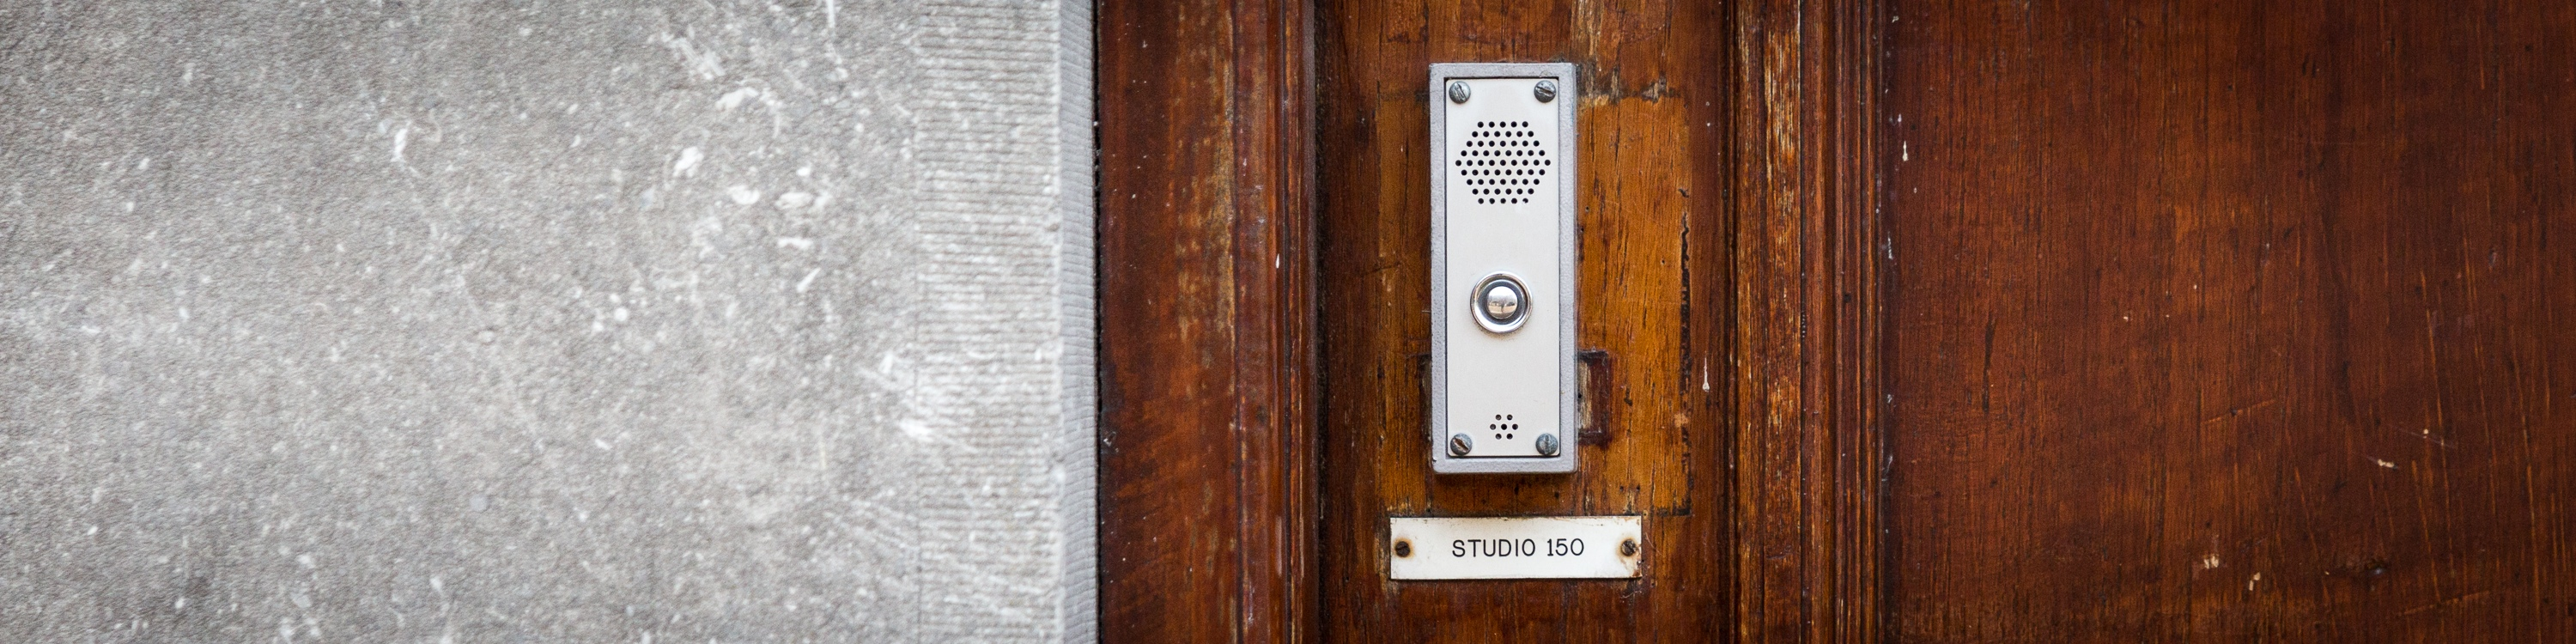 Studio 150 | Door & Doorbell Sliver-1